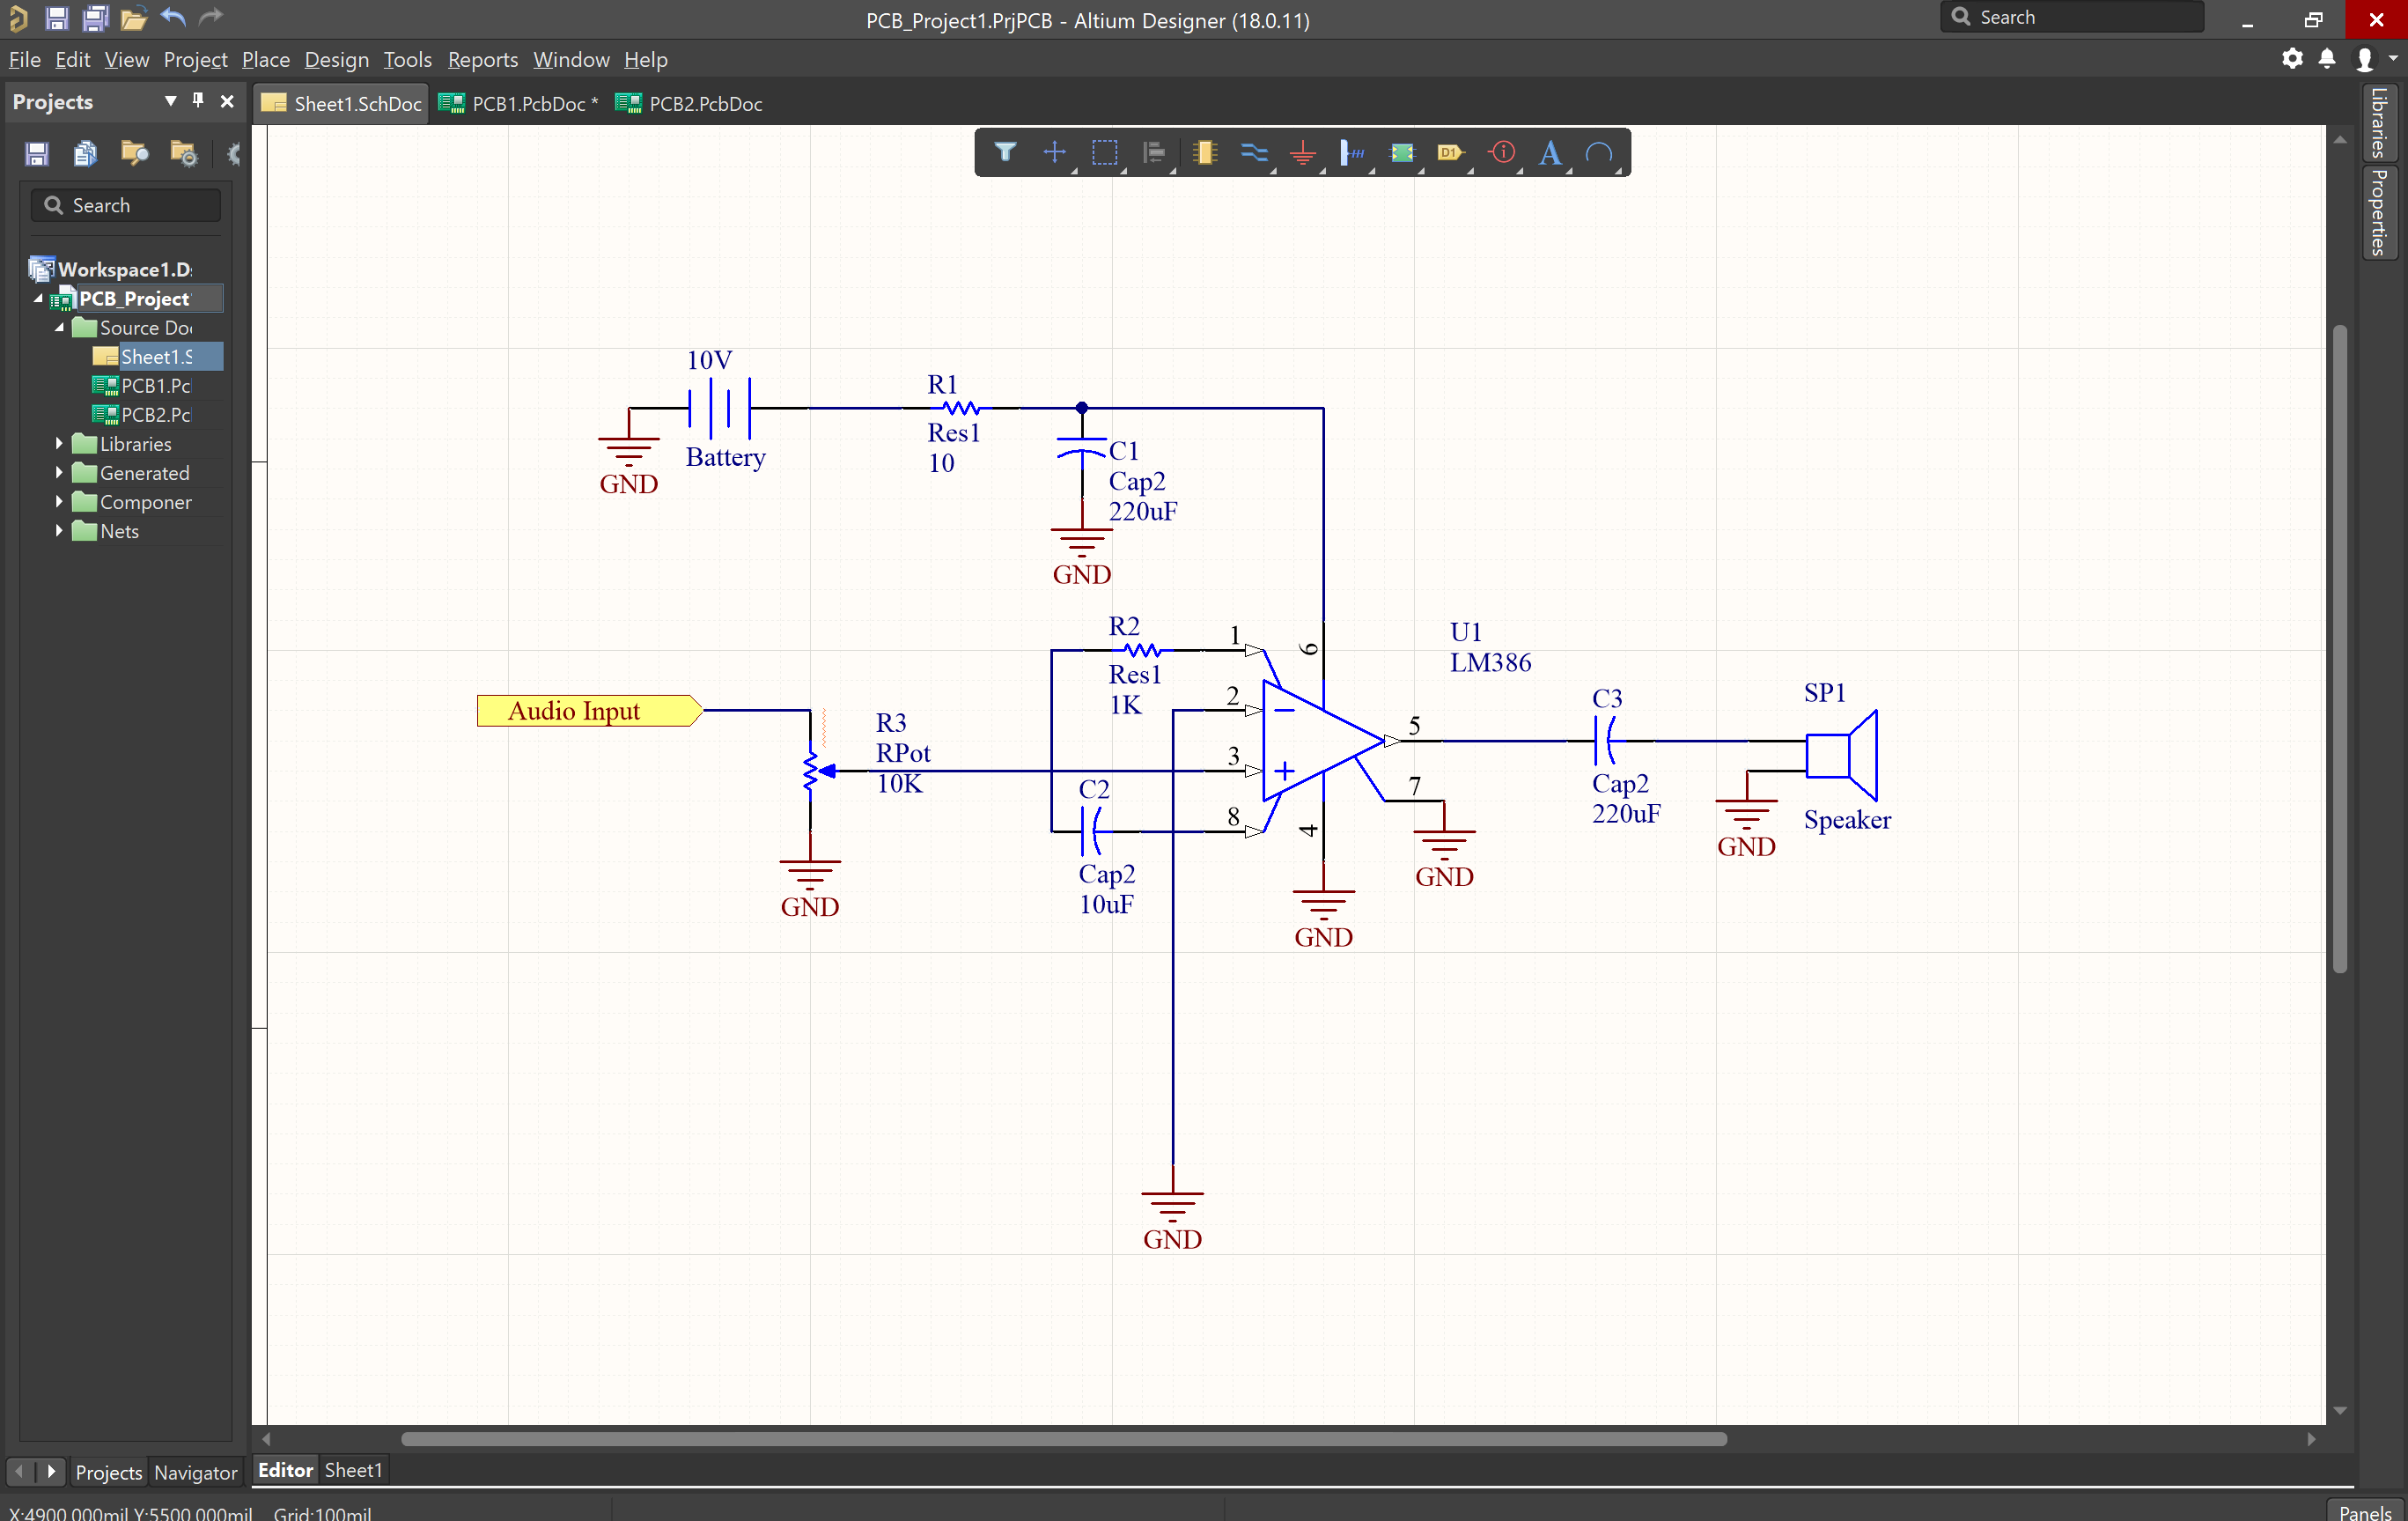 Schematic with components placed, routing, grounding, and a port